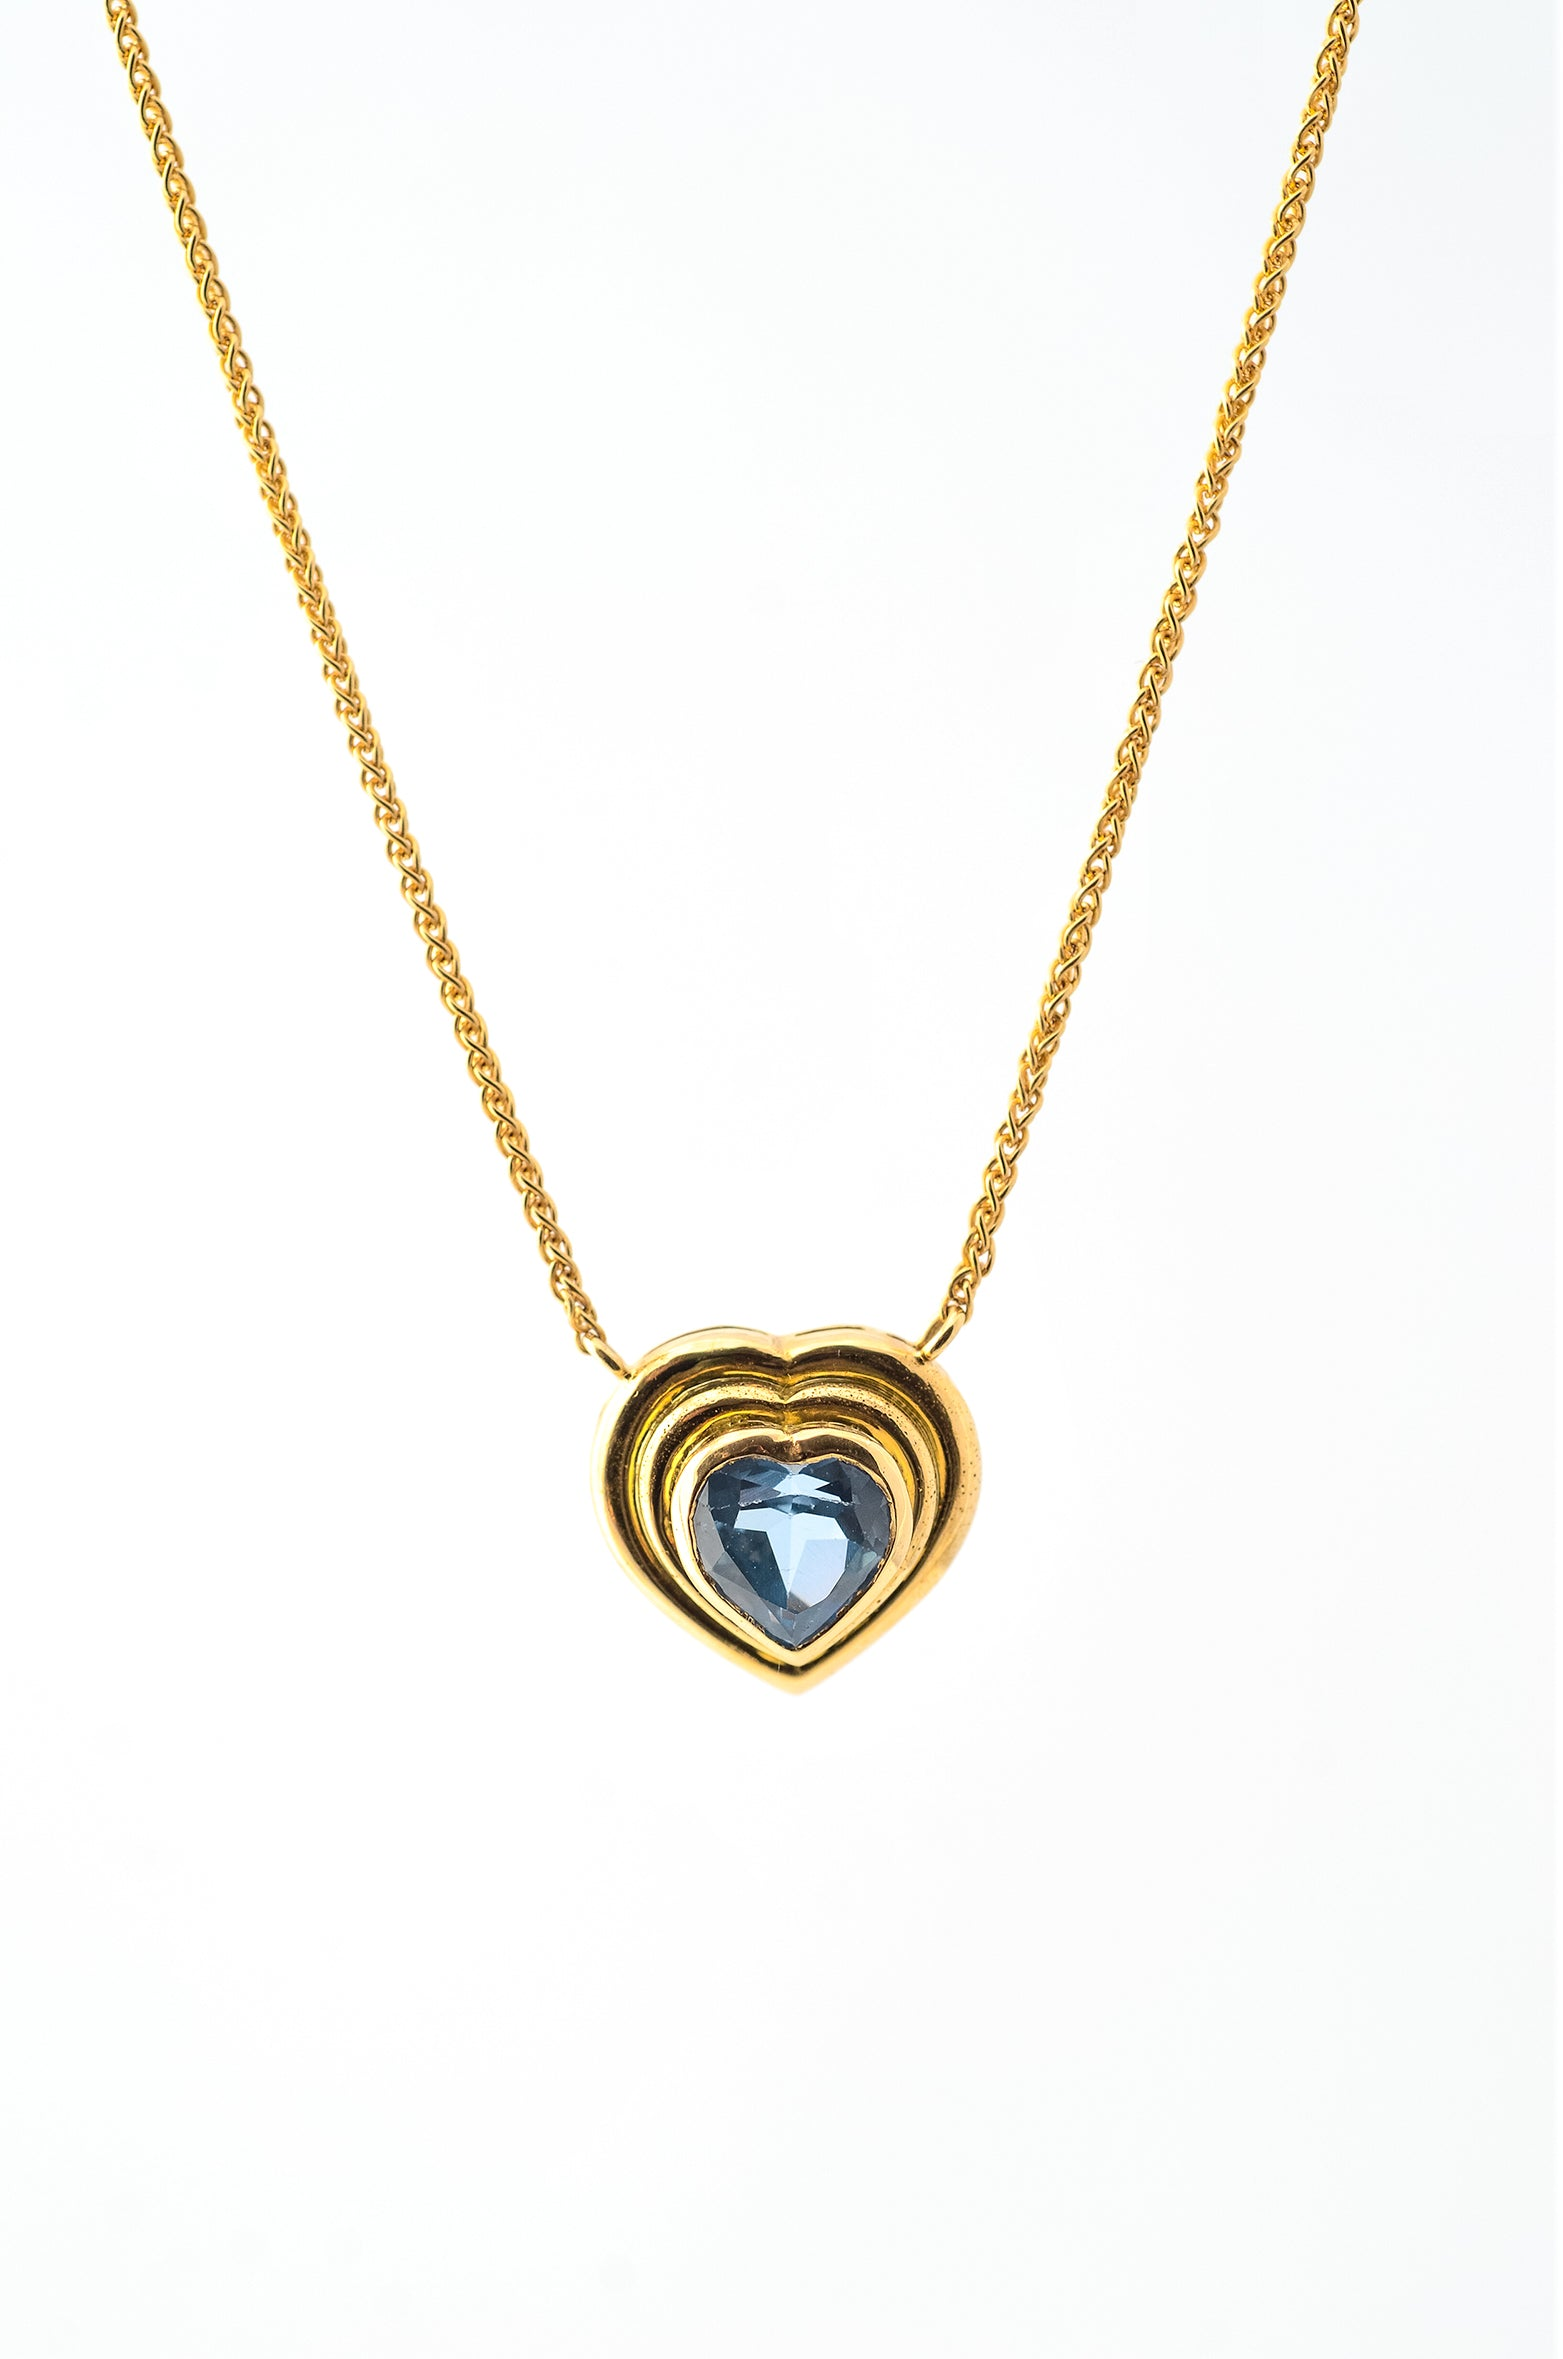 Vintage Blue Topaz Heart Pendant on Gold Chain